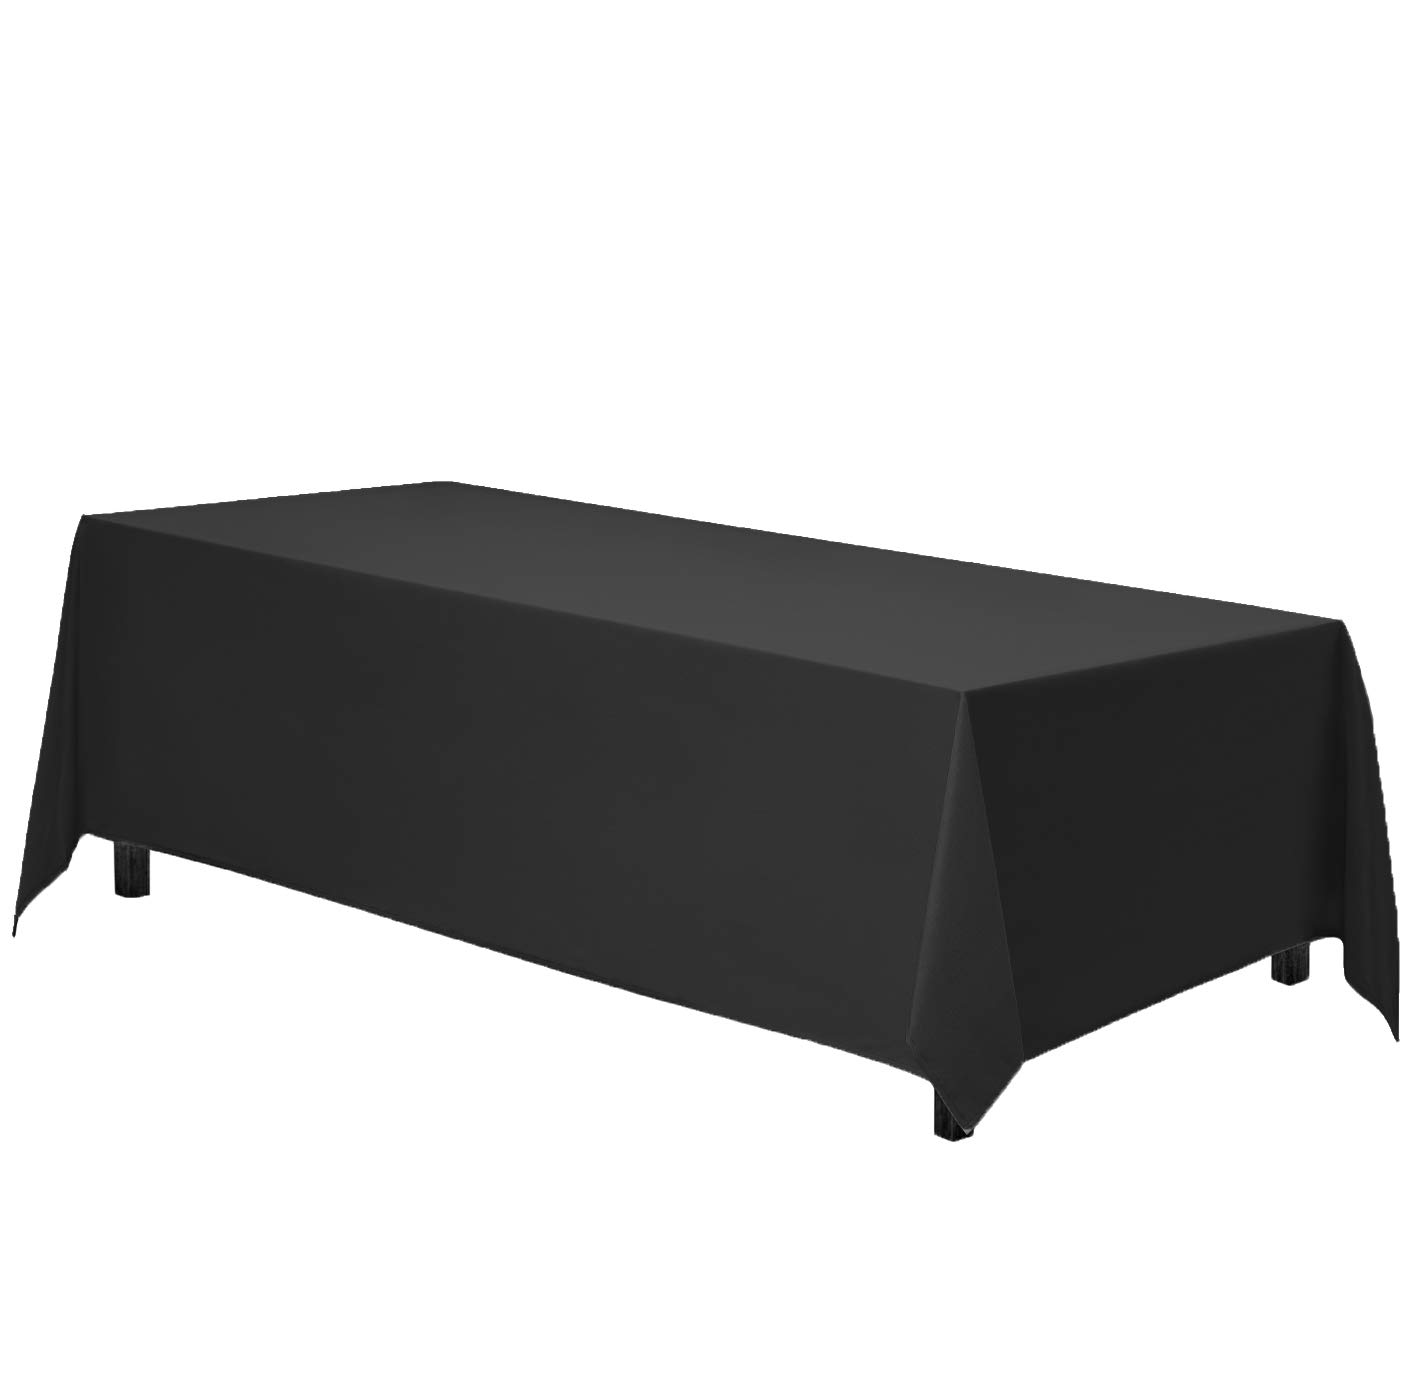 Gee Di Moda Rectangle Tablecloth - 90 x 132'' Inch - Black Rectangular Table Cloth for 6 Foot Table in Washable Polyester - Great for Buffet Table, Parties, Holiday Dinner, Wedding & More by Gee Di Moda